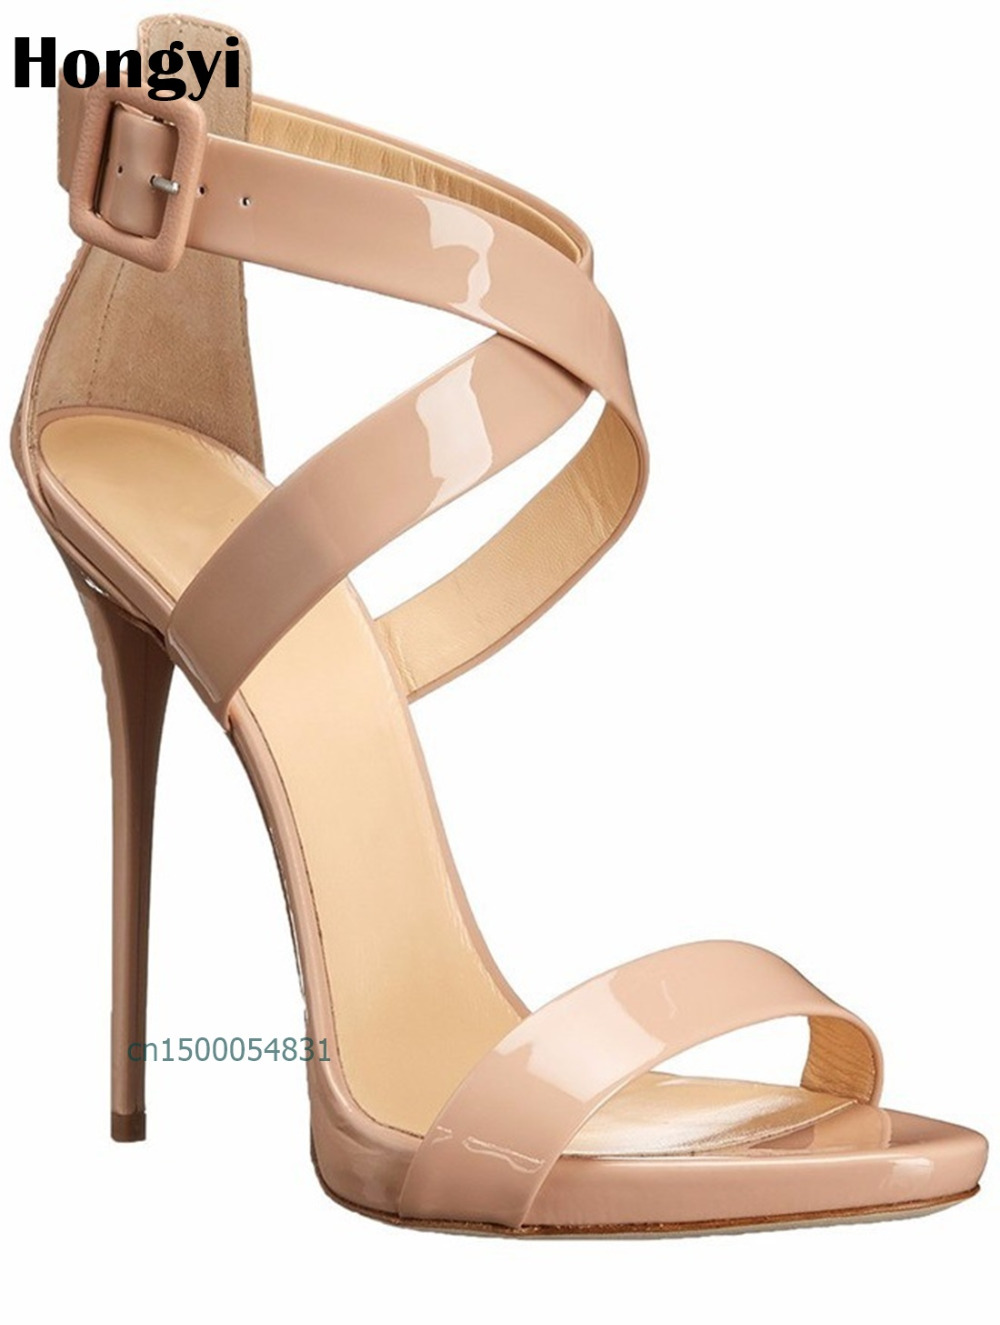 Hongyi Concise Nude Bright Shiny Leather High Heels Sandals Women Ankle Strap Summer Dress Shoes Woman Open Toe Sandals covibesco nude high heels sandals women ankle strap summer dress shoes woman open toe sandals sexy prom wedding shoes large size